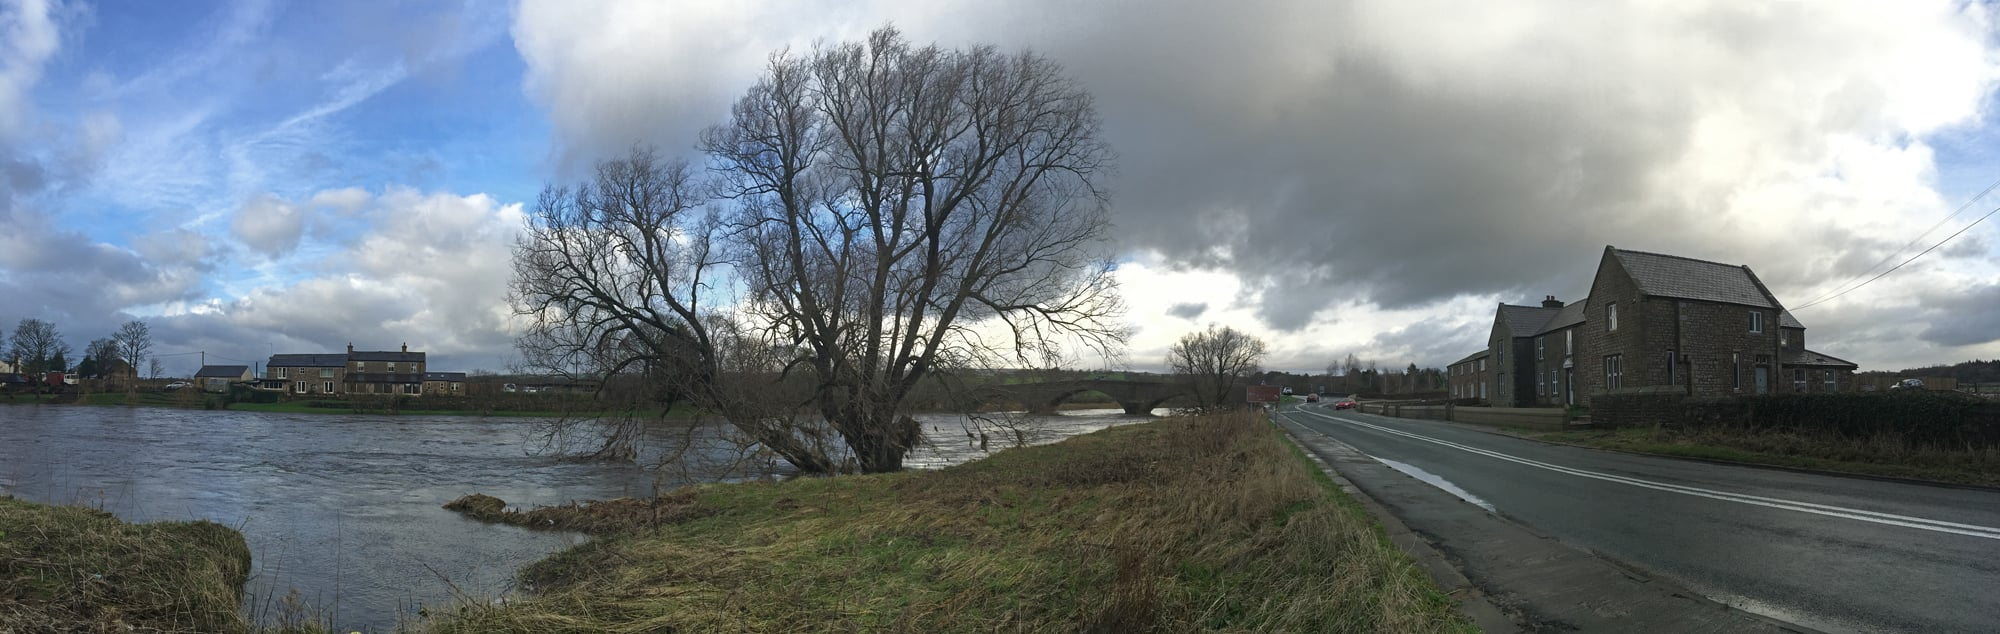 Ribchester Bridge - the properties in this photo were flooded on Boxing Day and the River Ribble remains high after never ending rain.